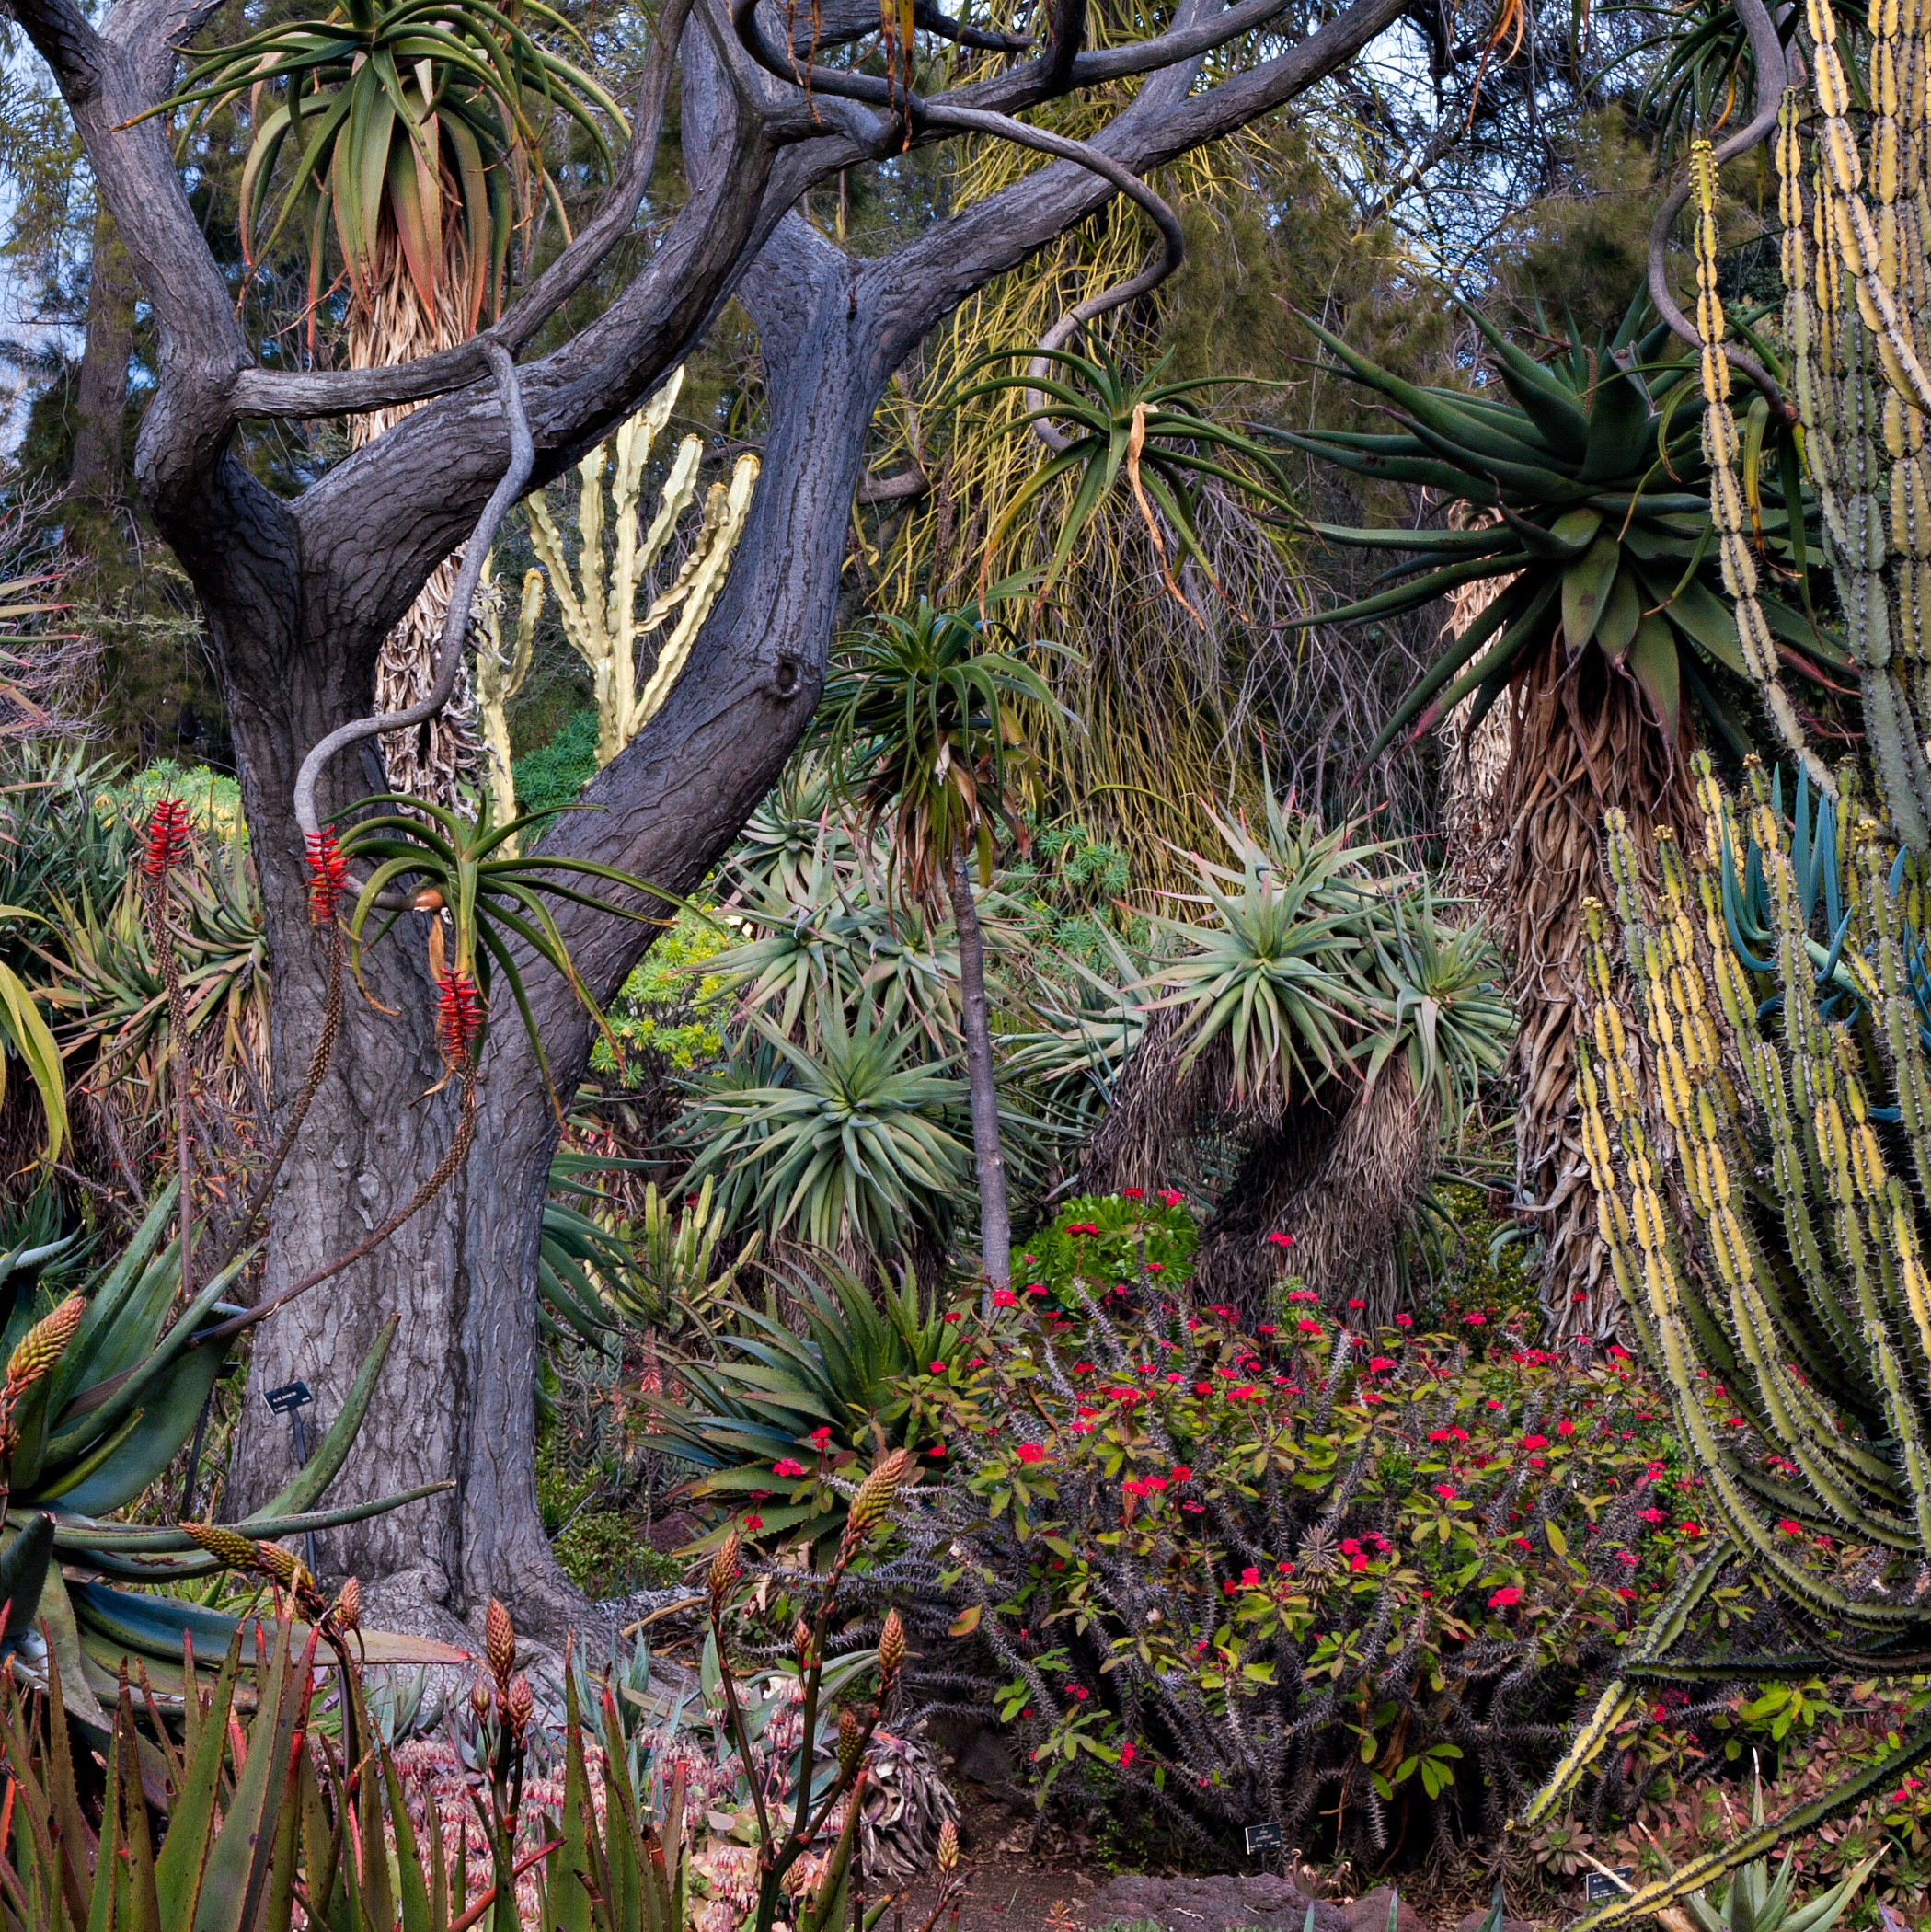 Public Gardens of California